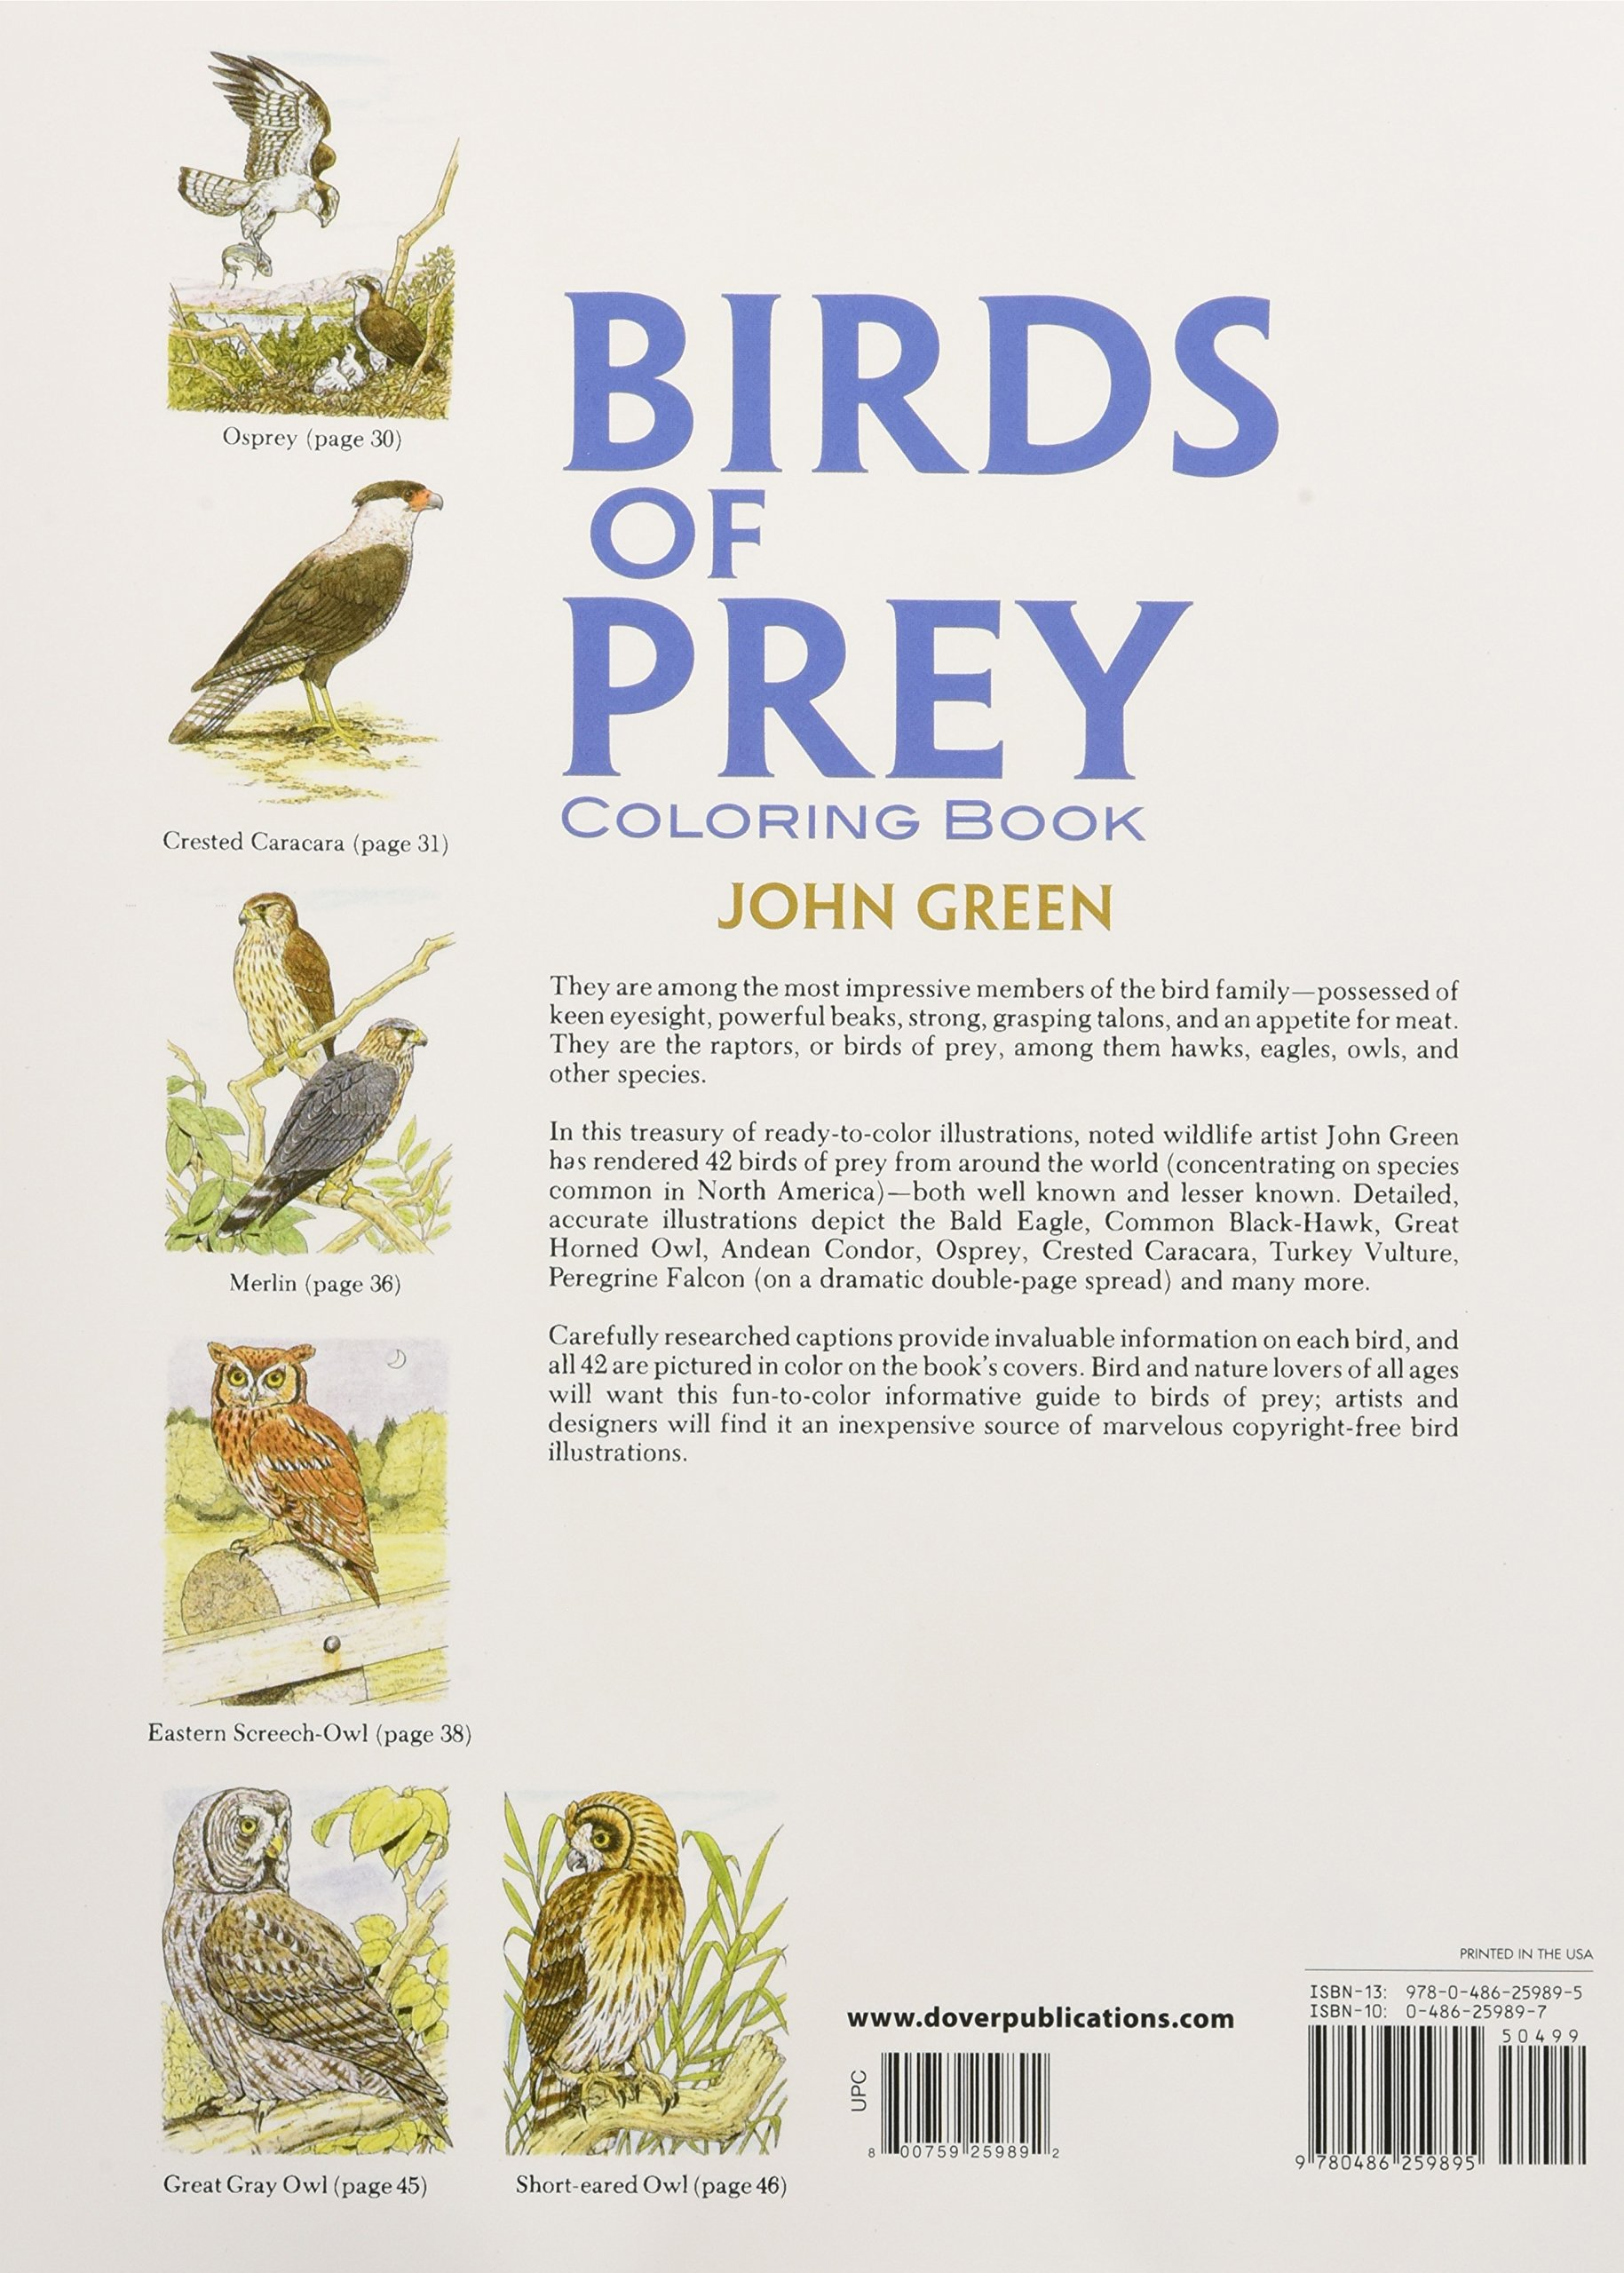 Birds Of Prey Coloring Book John Green 0800759259892 Amazon Books